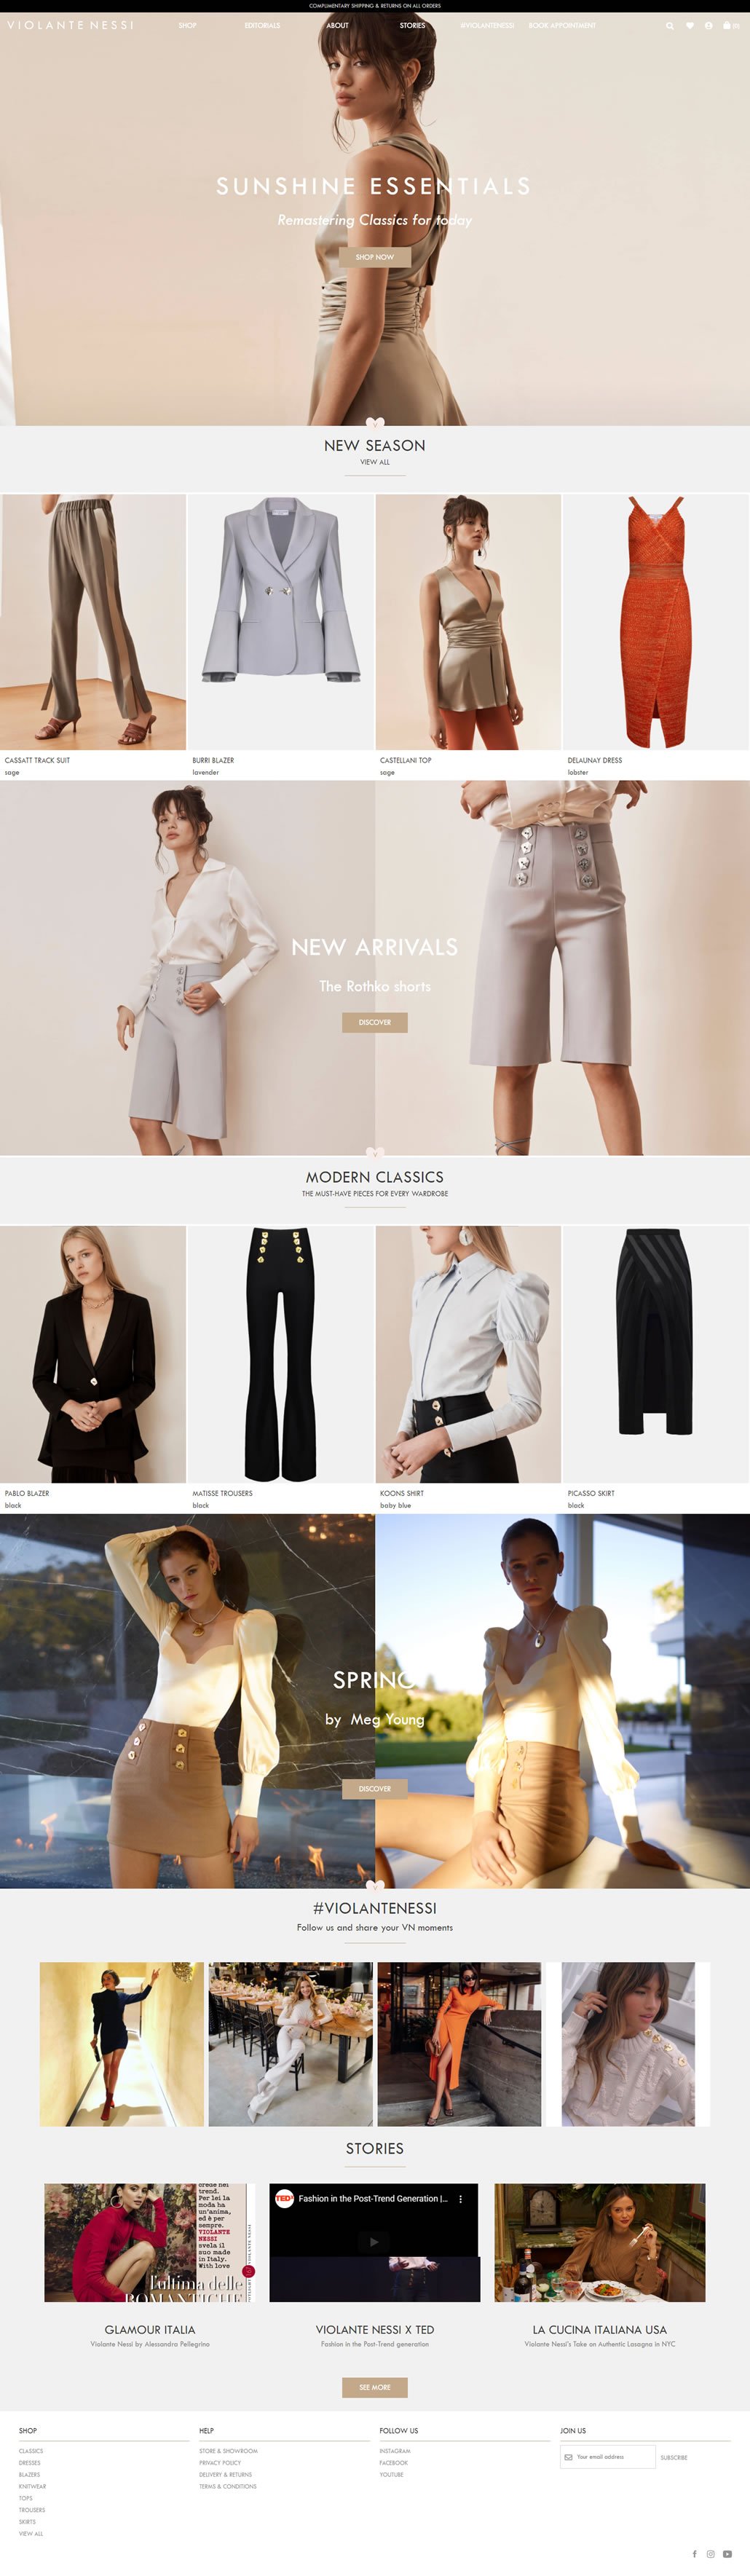 Violante Nessi built using WordPress and WooCommerce, web design by Convoy Media